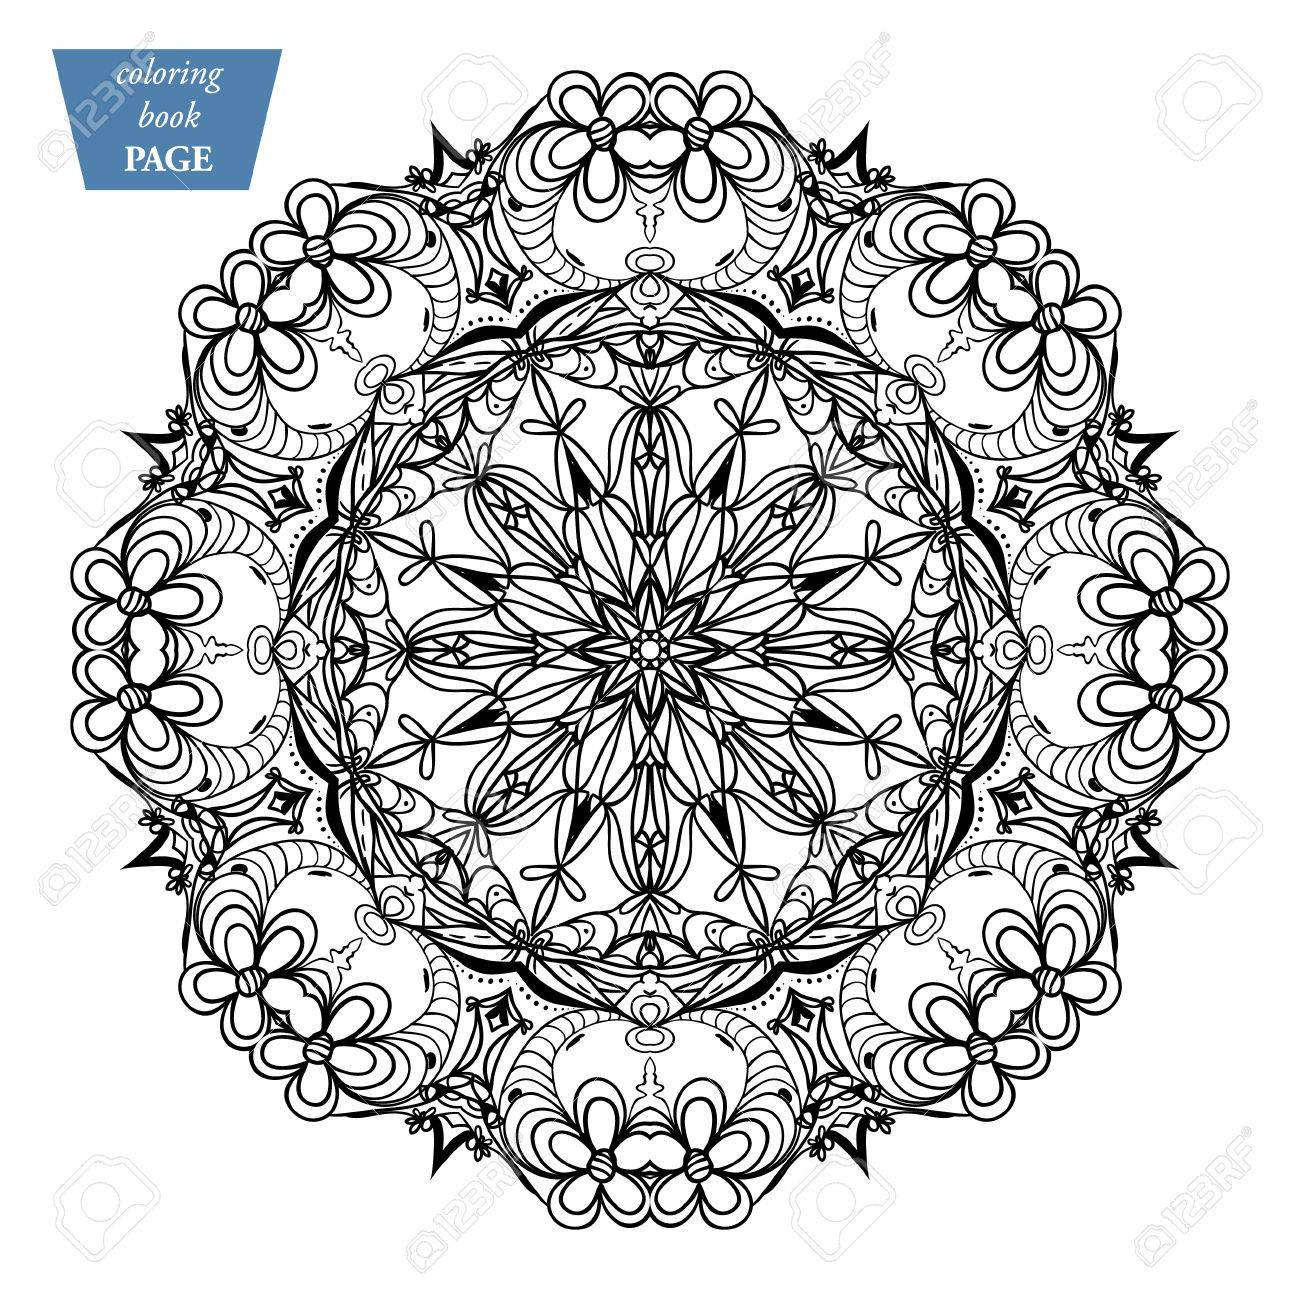 Circular Mandala Coloring Page Vintage Decorative Elements Oriental Pattern Vector Illustrationh